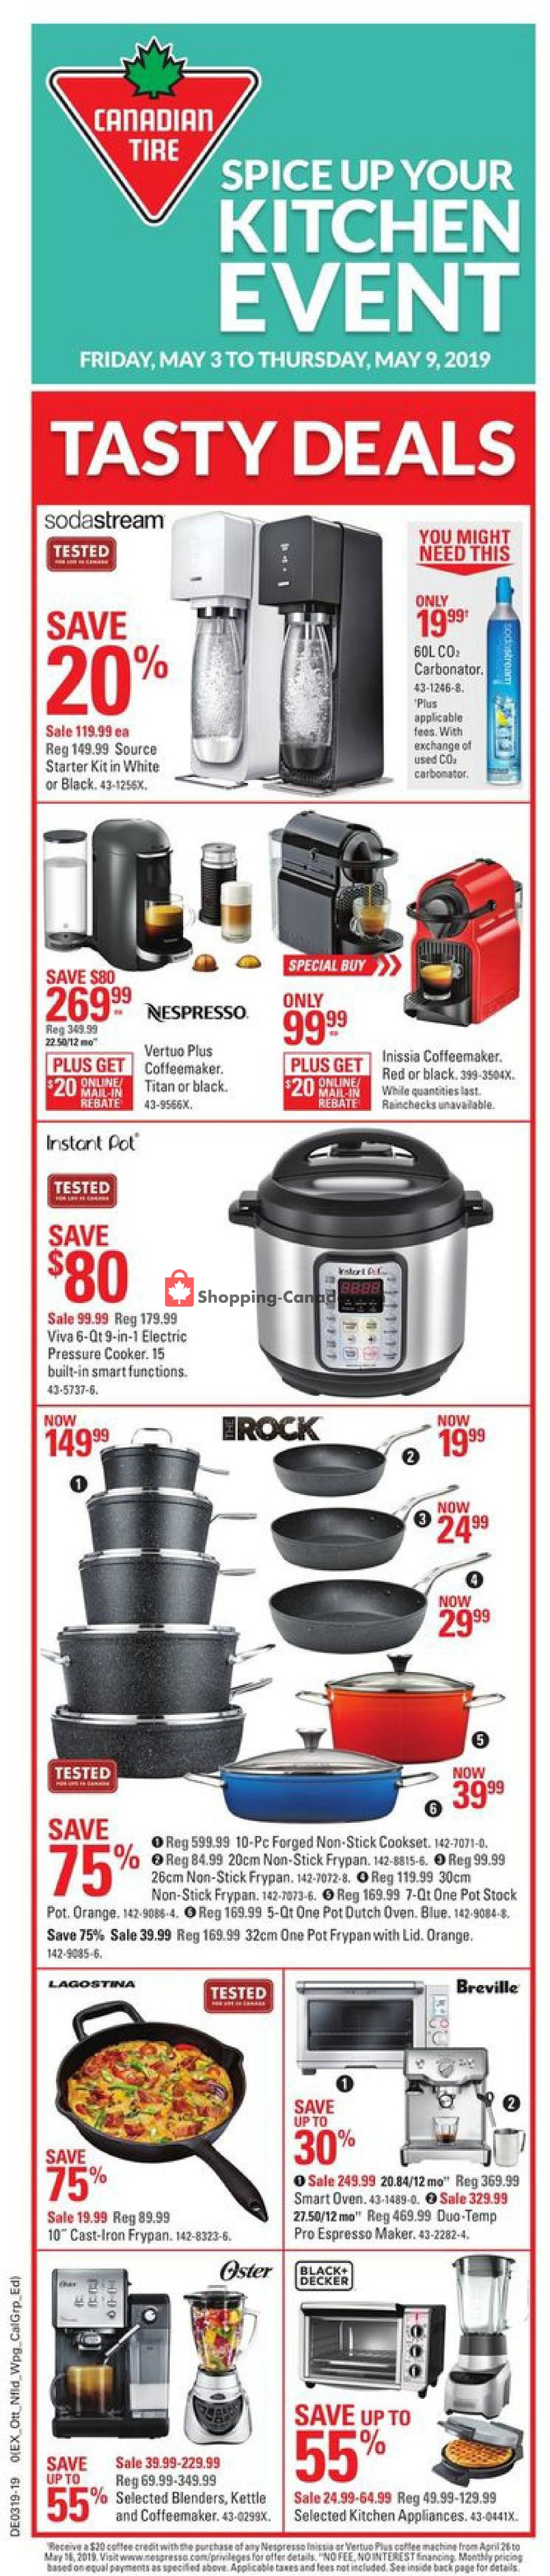 Flyer Canadian Tire Canada - from Friday May 3, 2019 to Thursday May 9, 2019